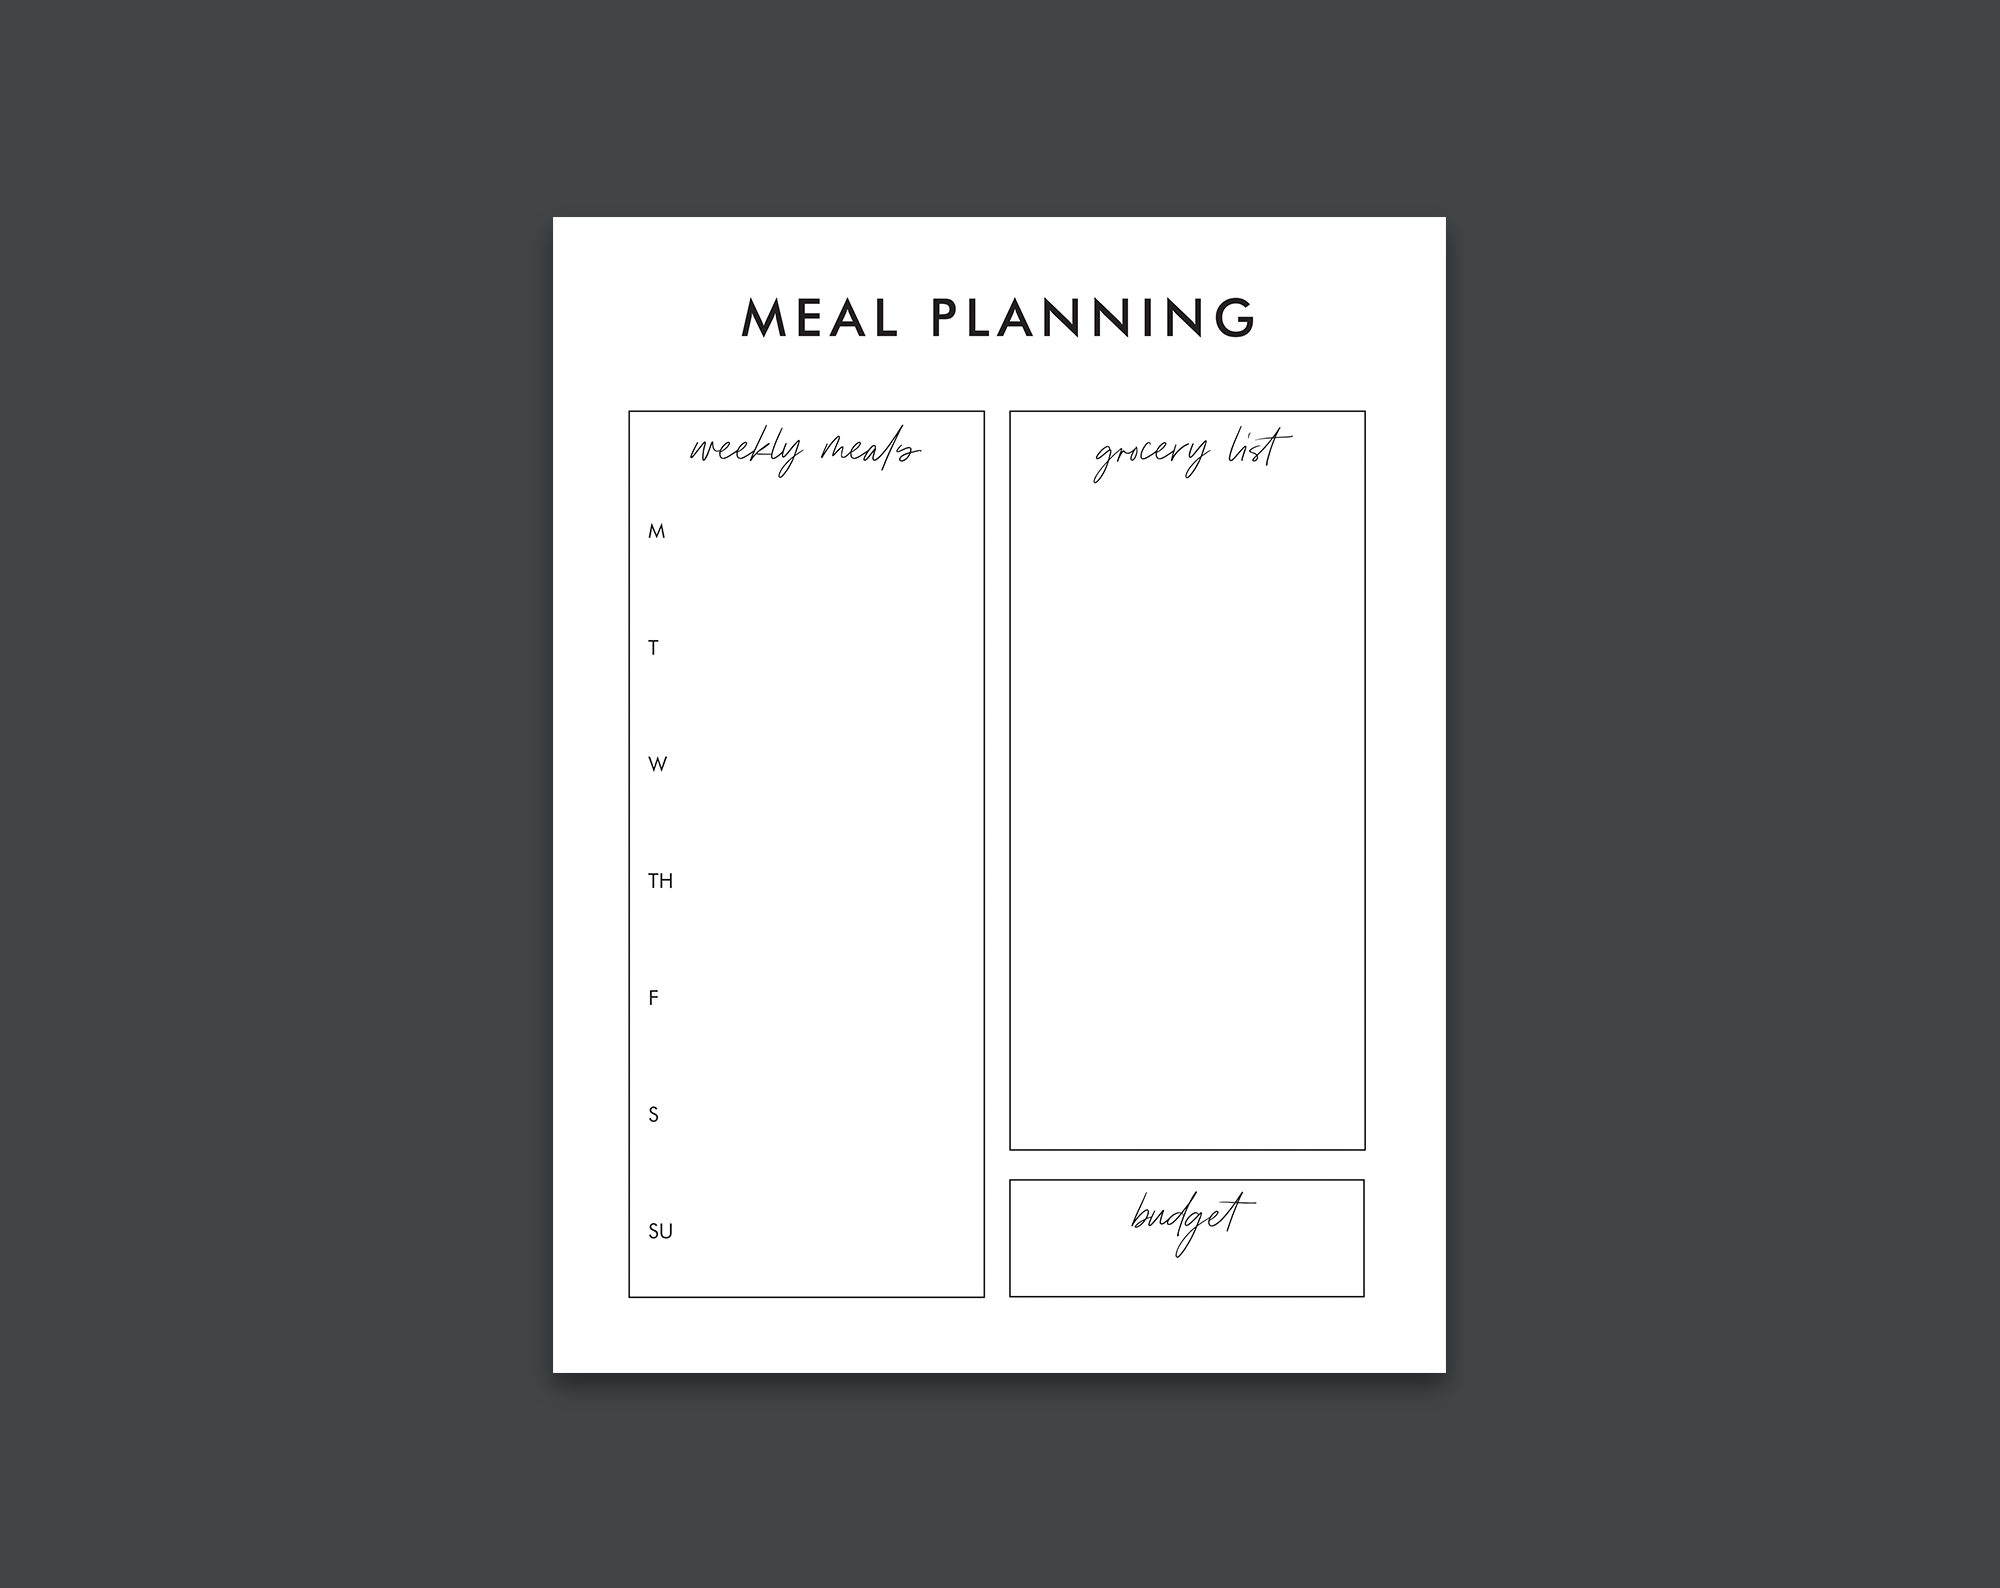 Meal Planning Thumbnail.png